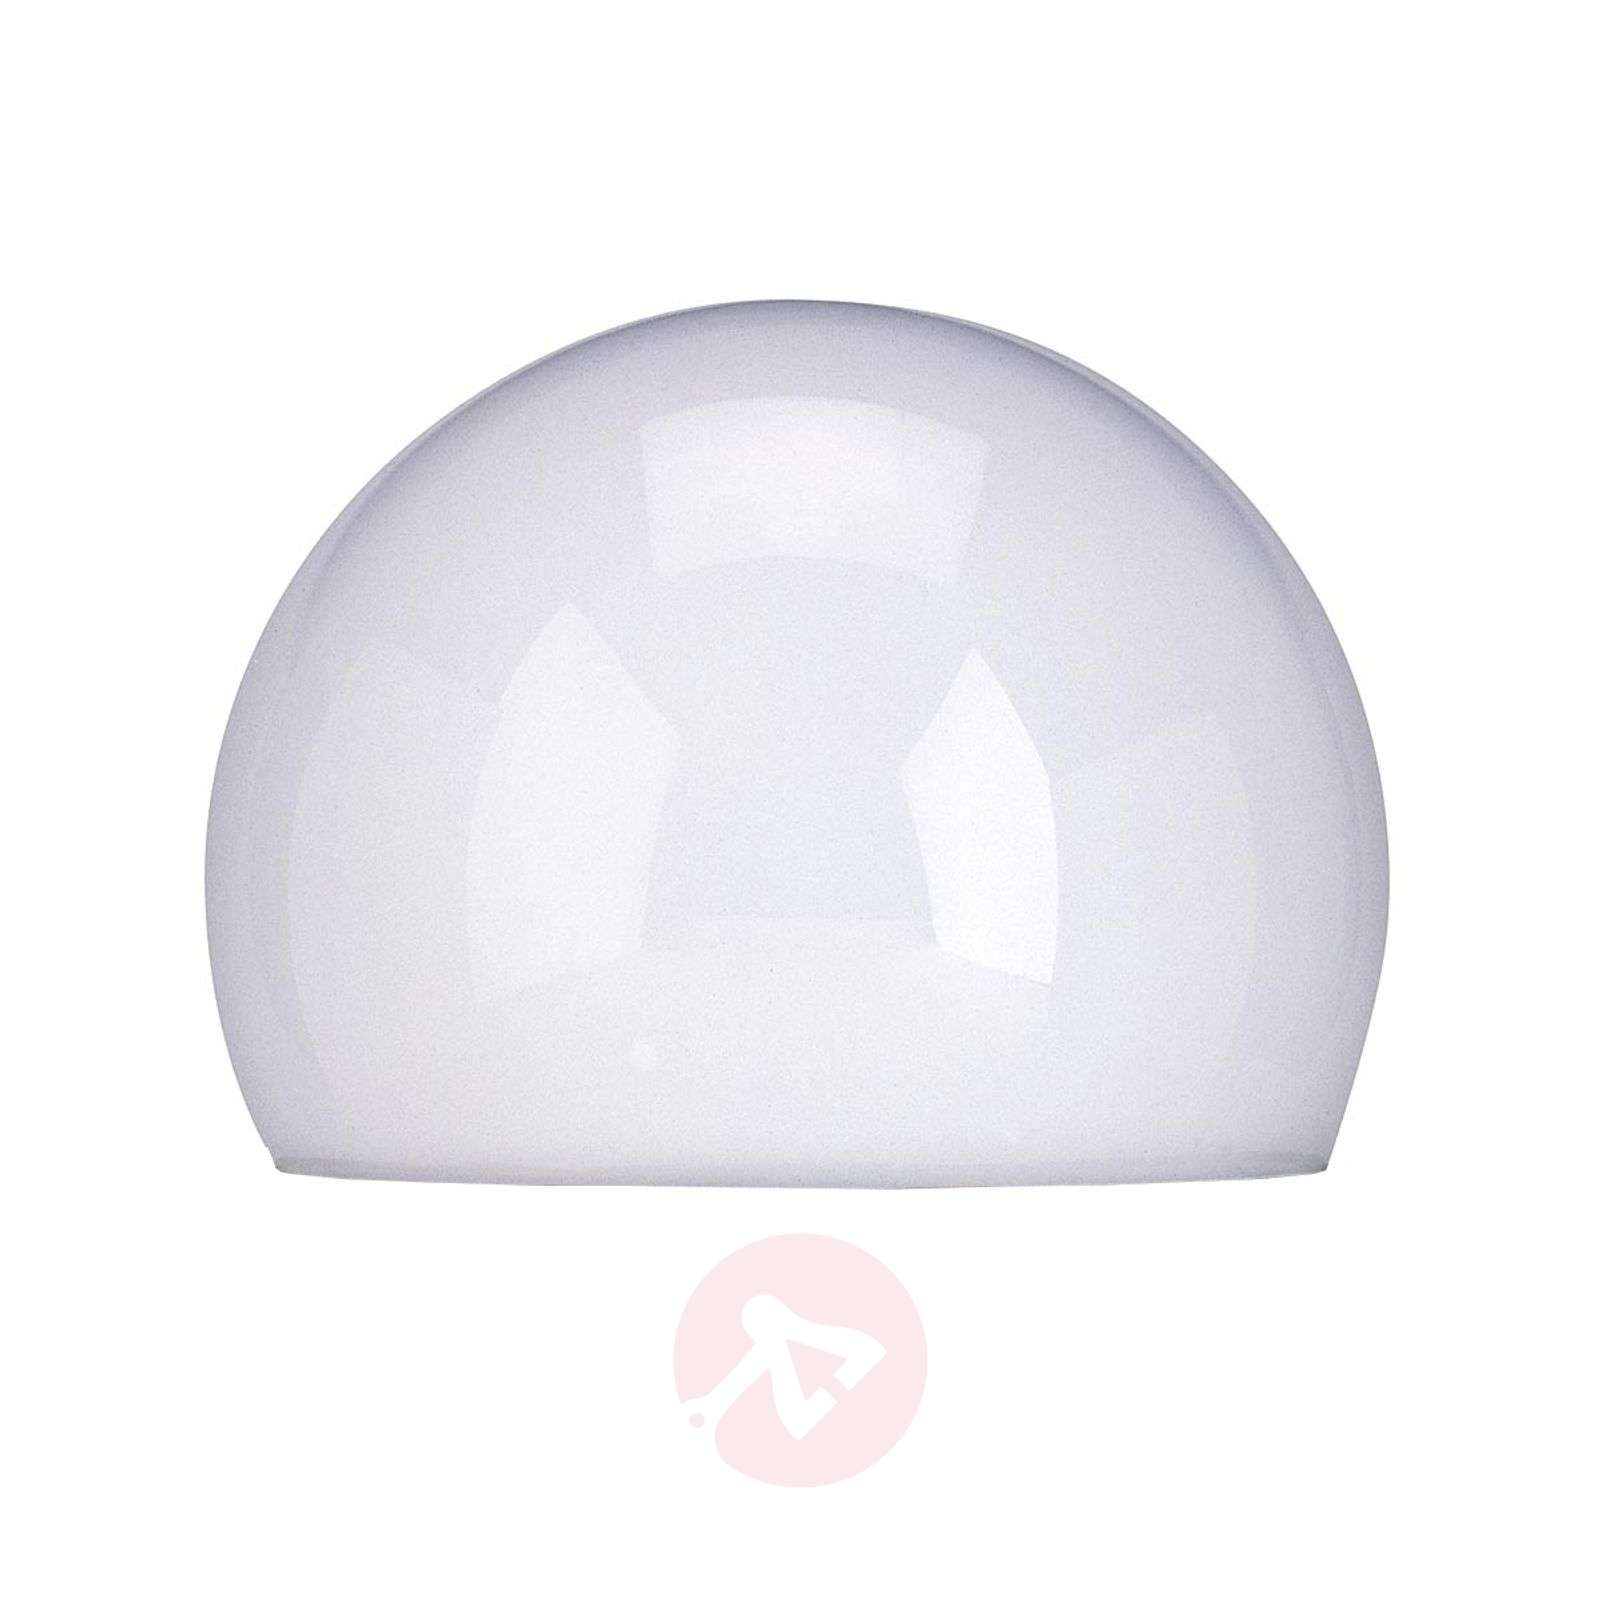 Spare glass lampshade for the Wagenfeld table lamp-9030005-04